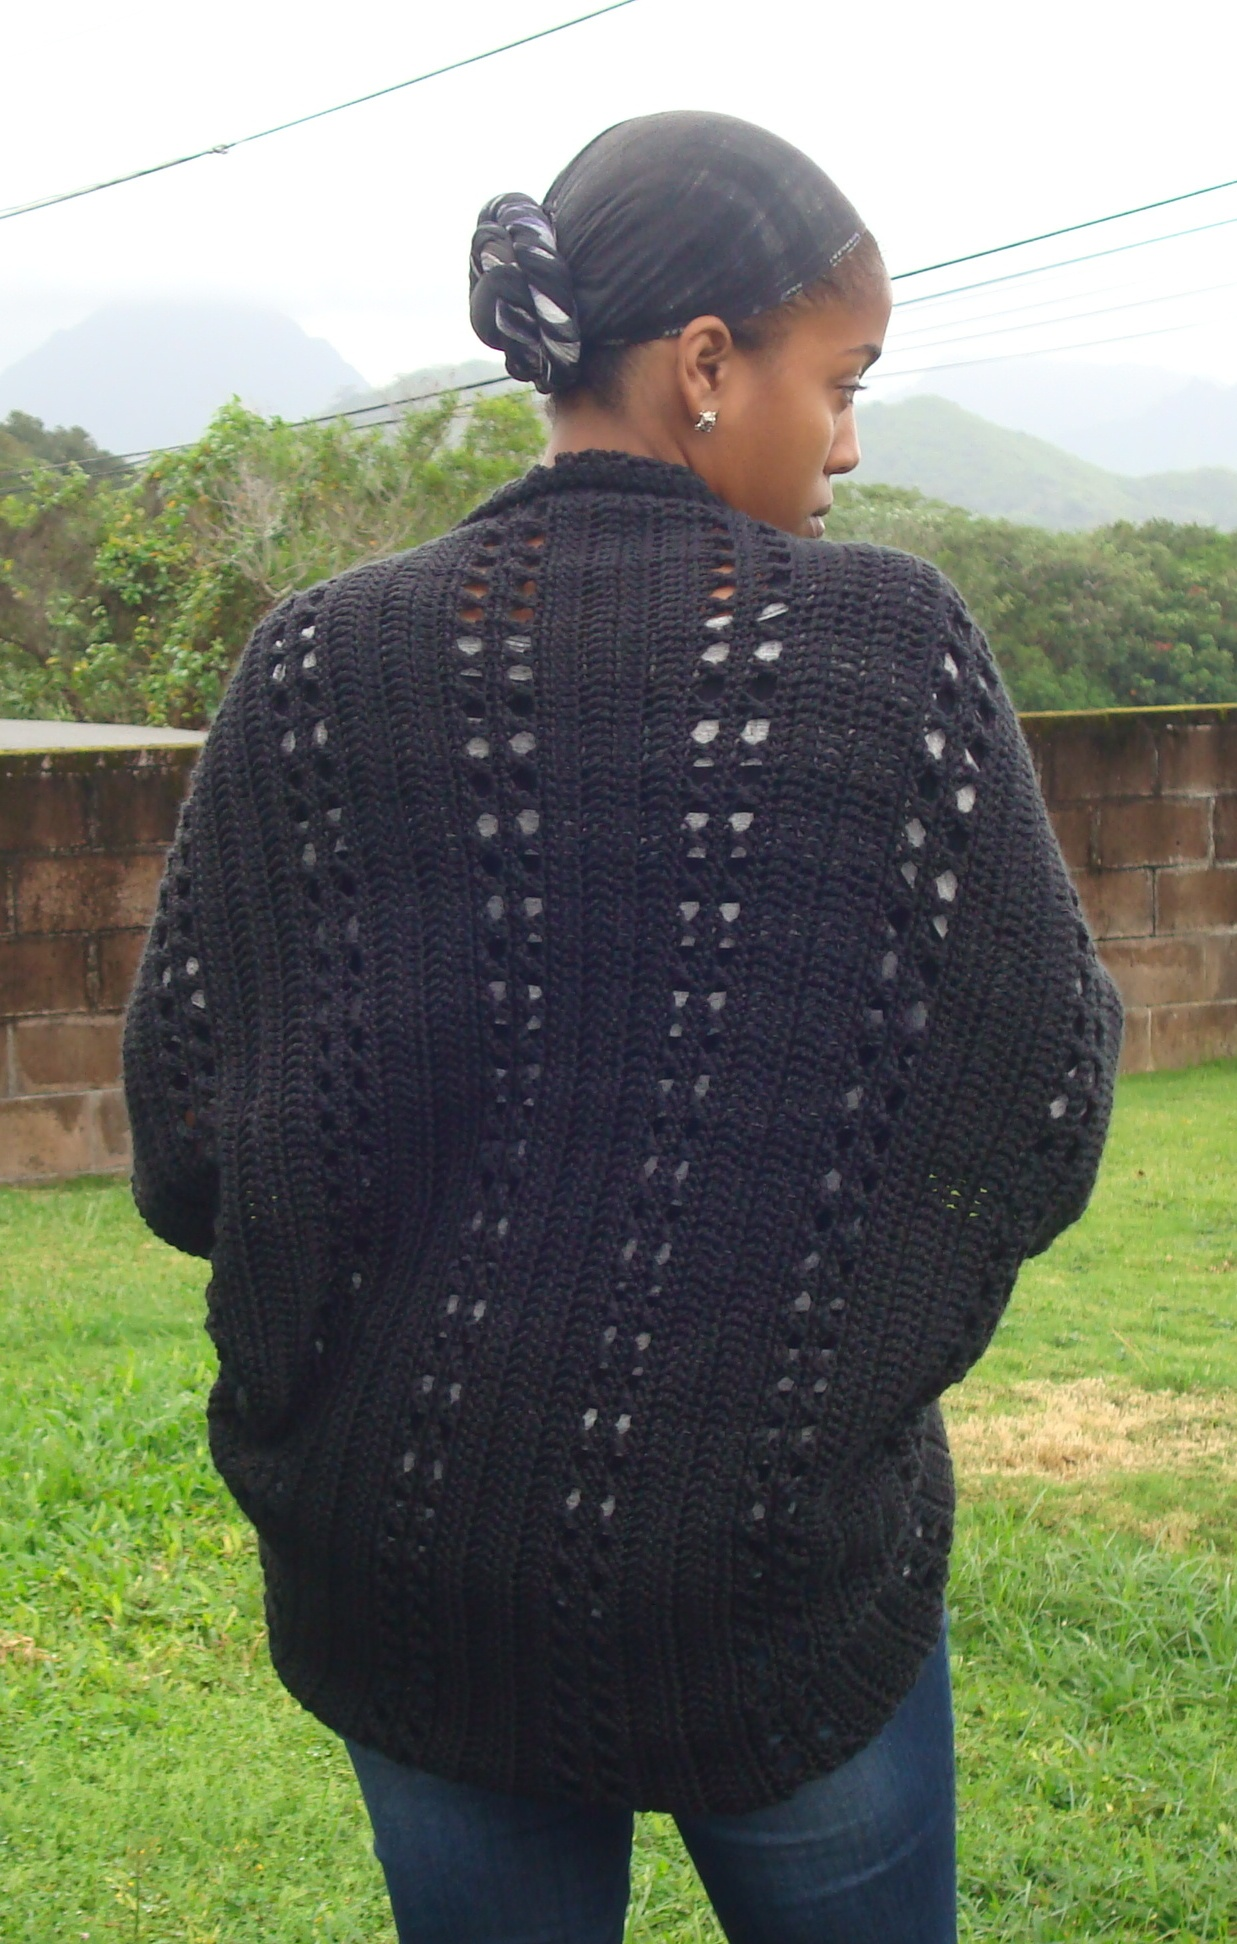 Deanna Young's Crochet X-Stitch Shrug